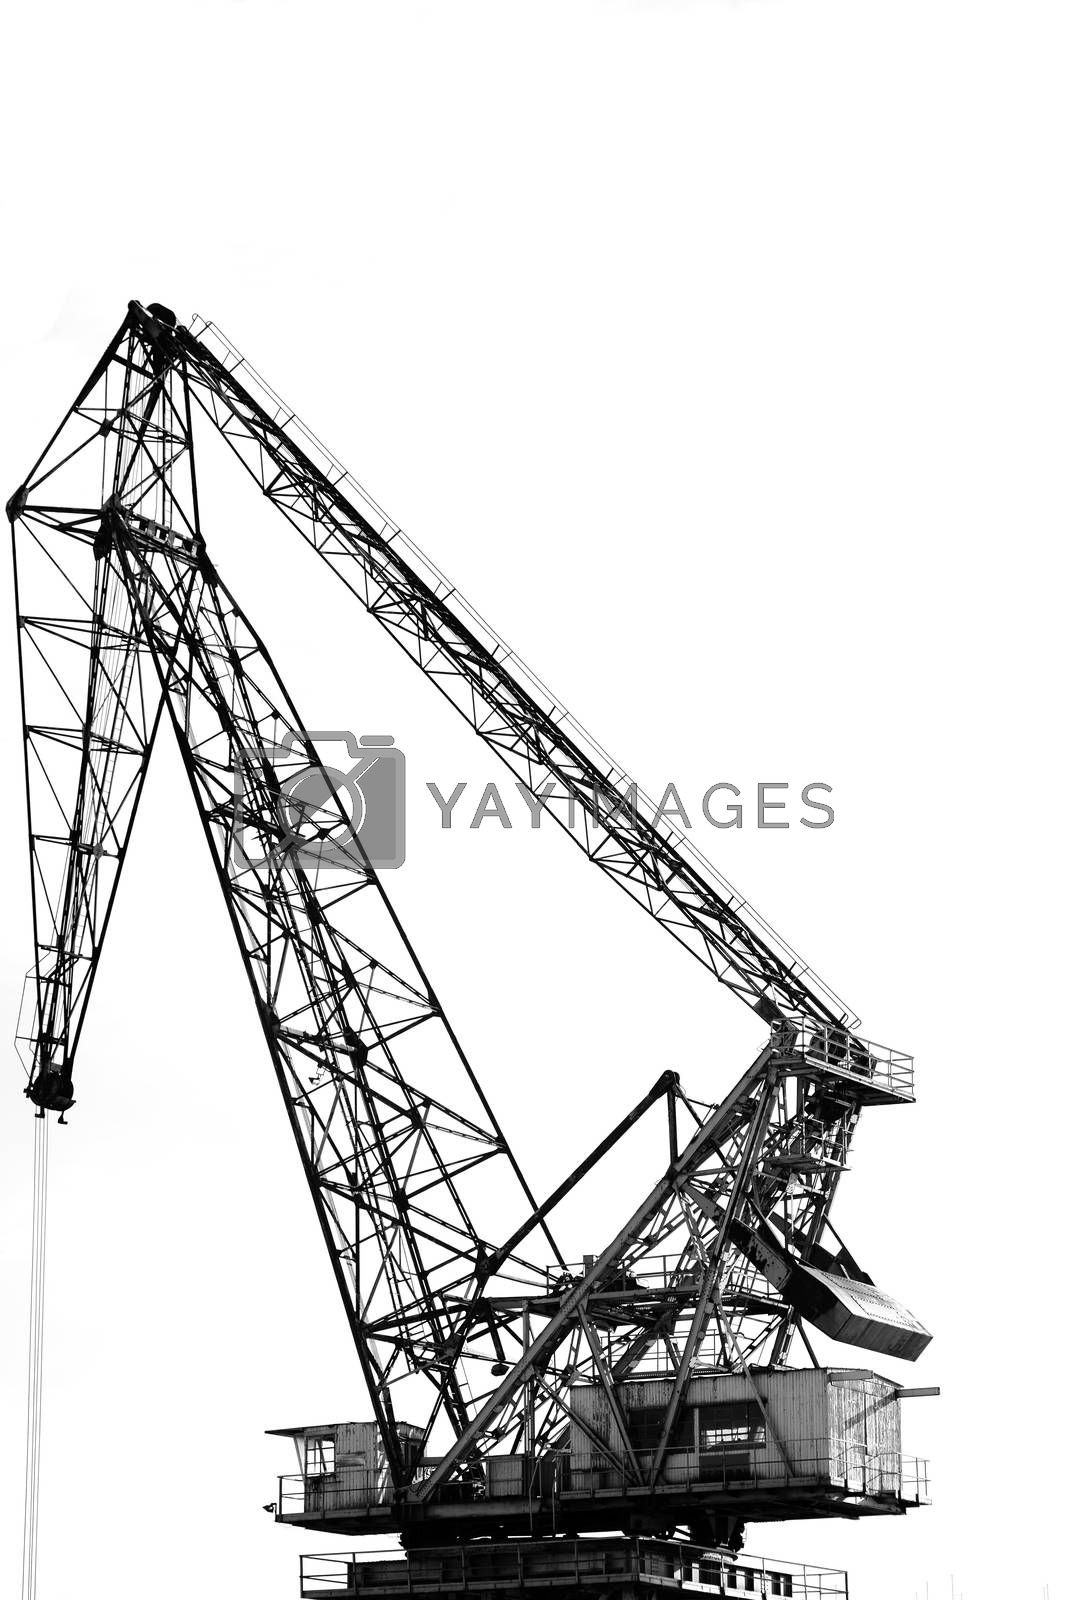 A heavy harbor crane with a cab and a container structure.